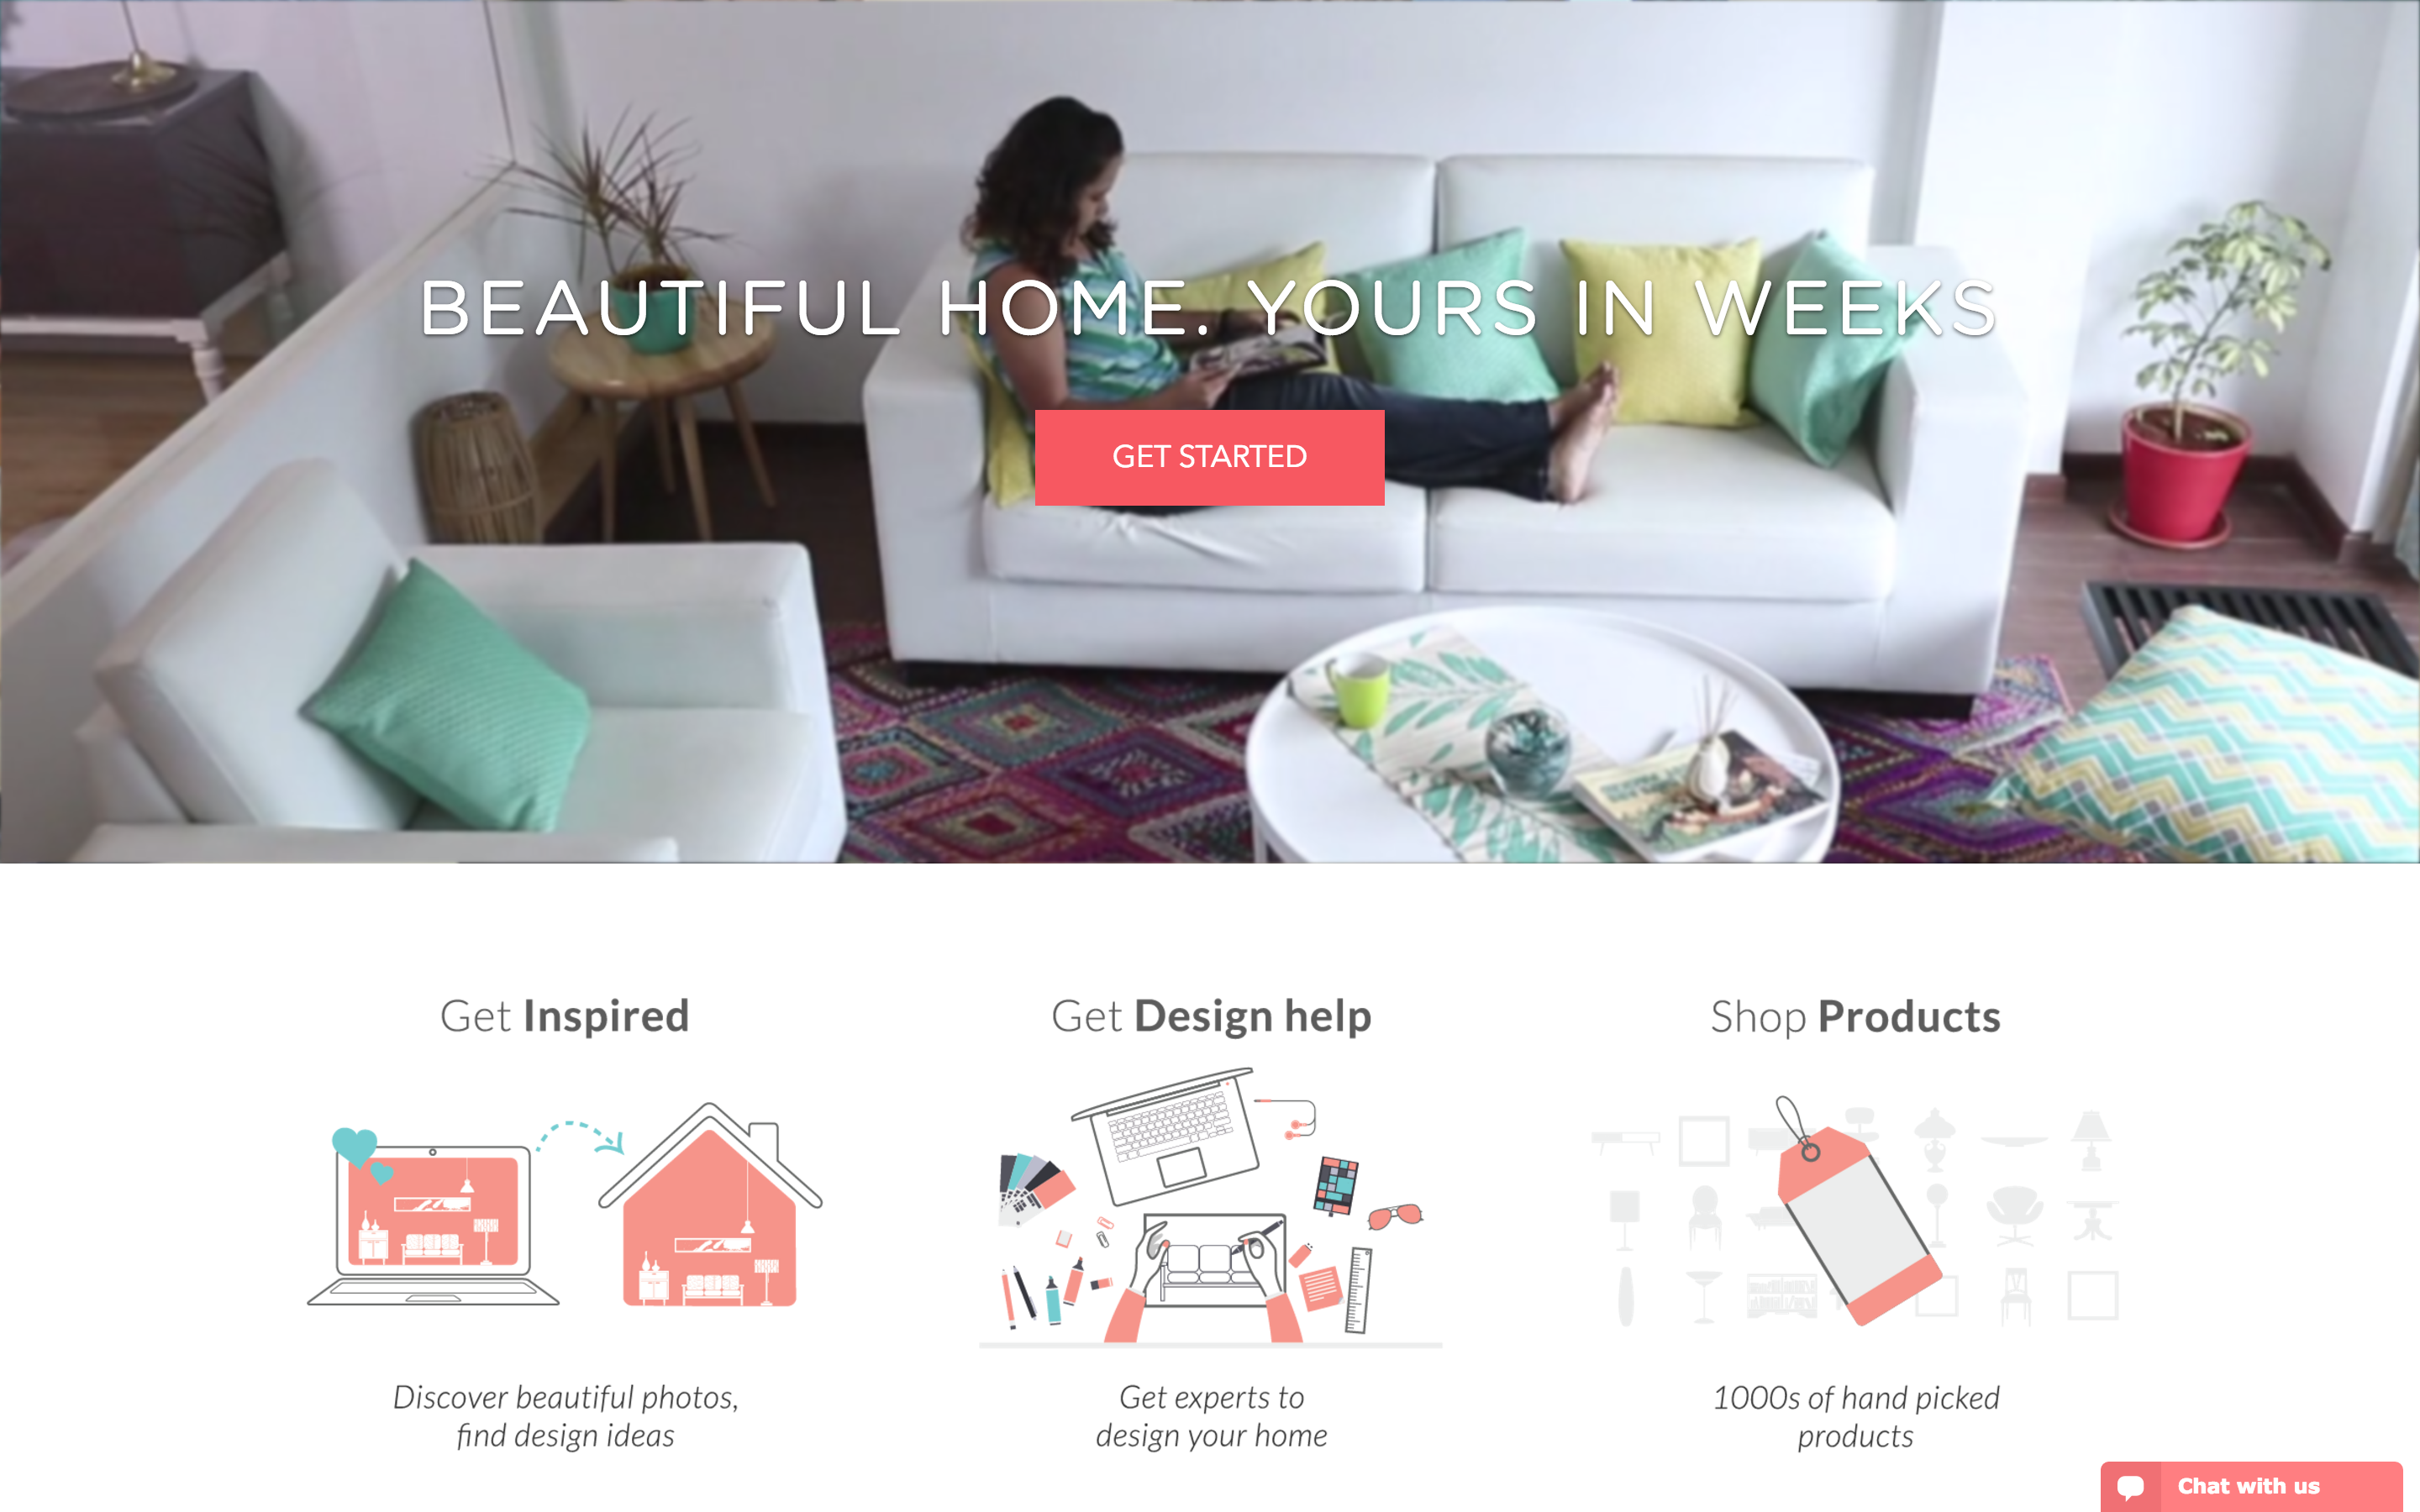 India Based Home Design And Furnishing Company Livspace Has Closed A $15  Million Series B Round Which Will Be Used To Fund An Expansion Into New  Cities.